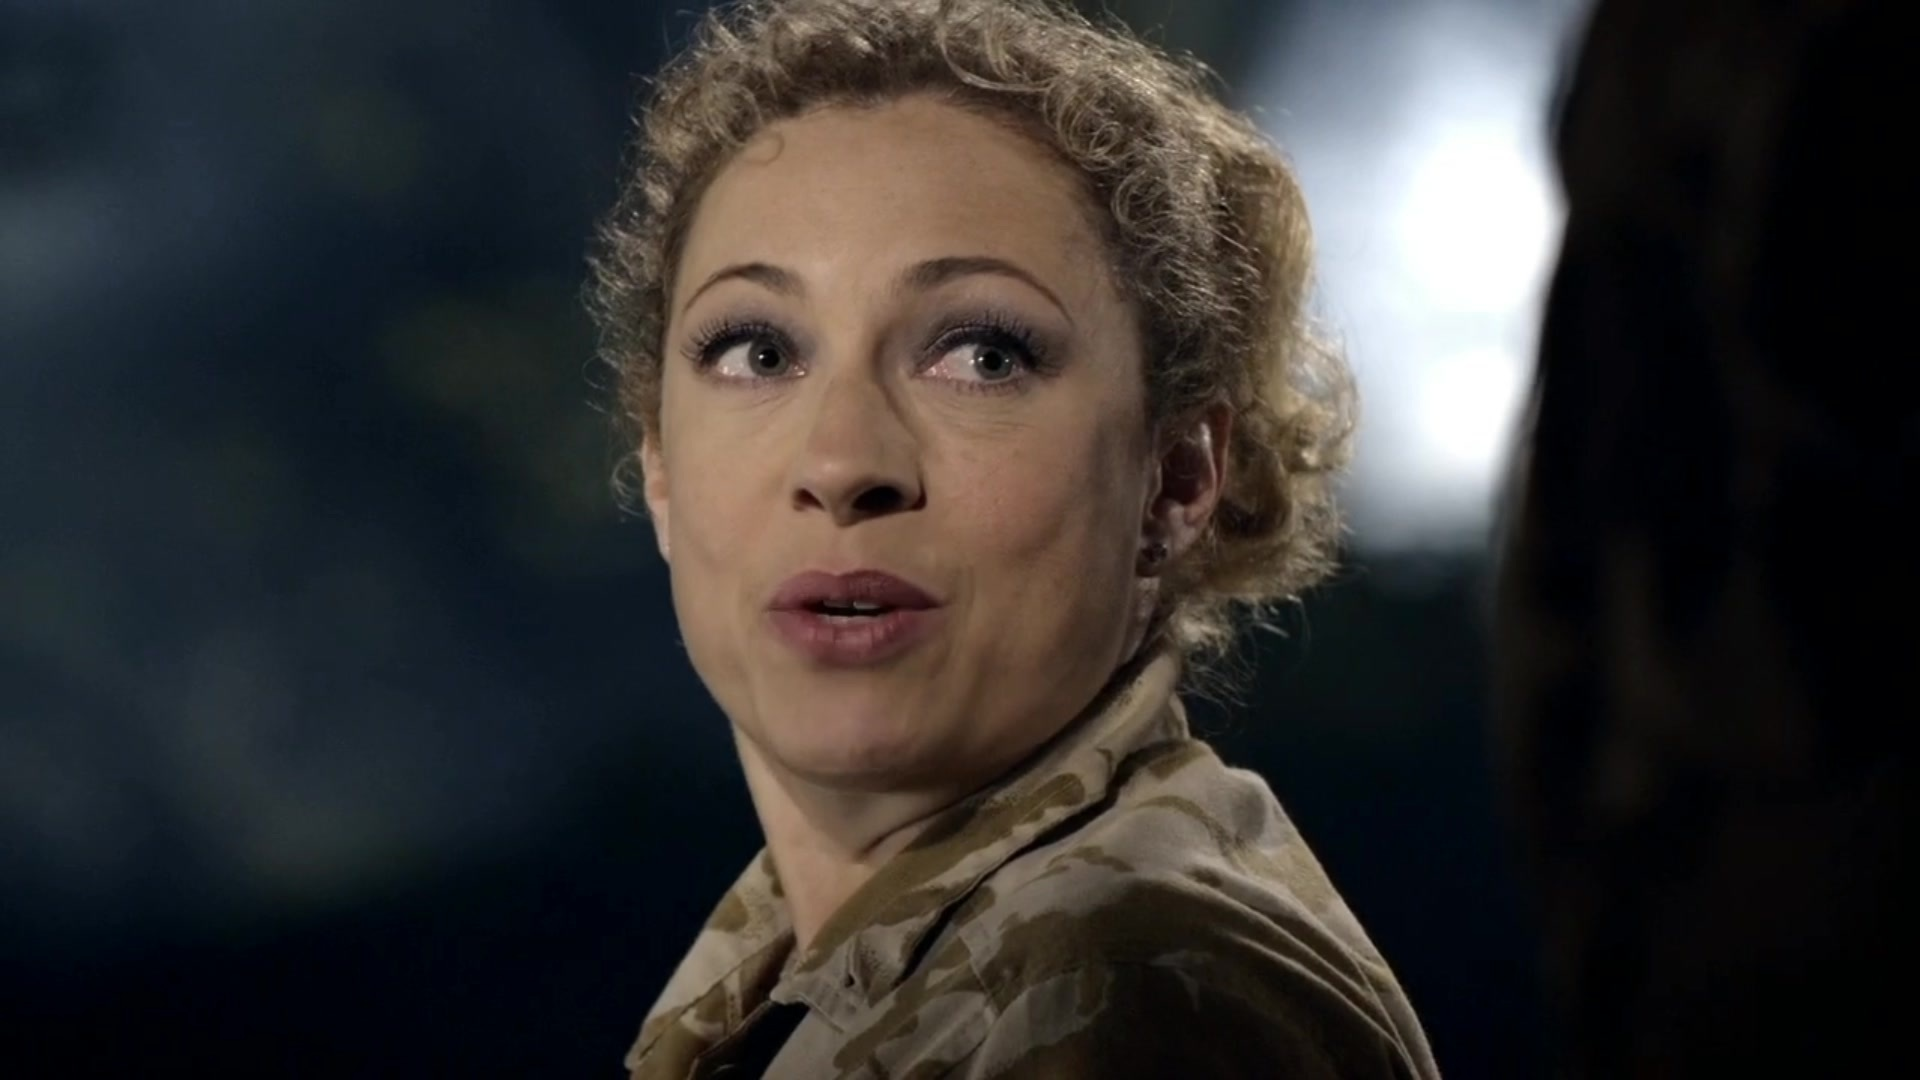 The doctor and river song doctor/river - 5x05 - flesh and stone